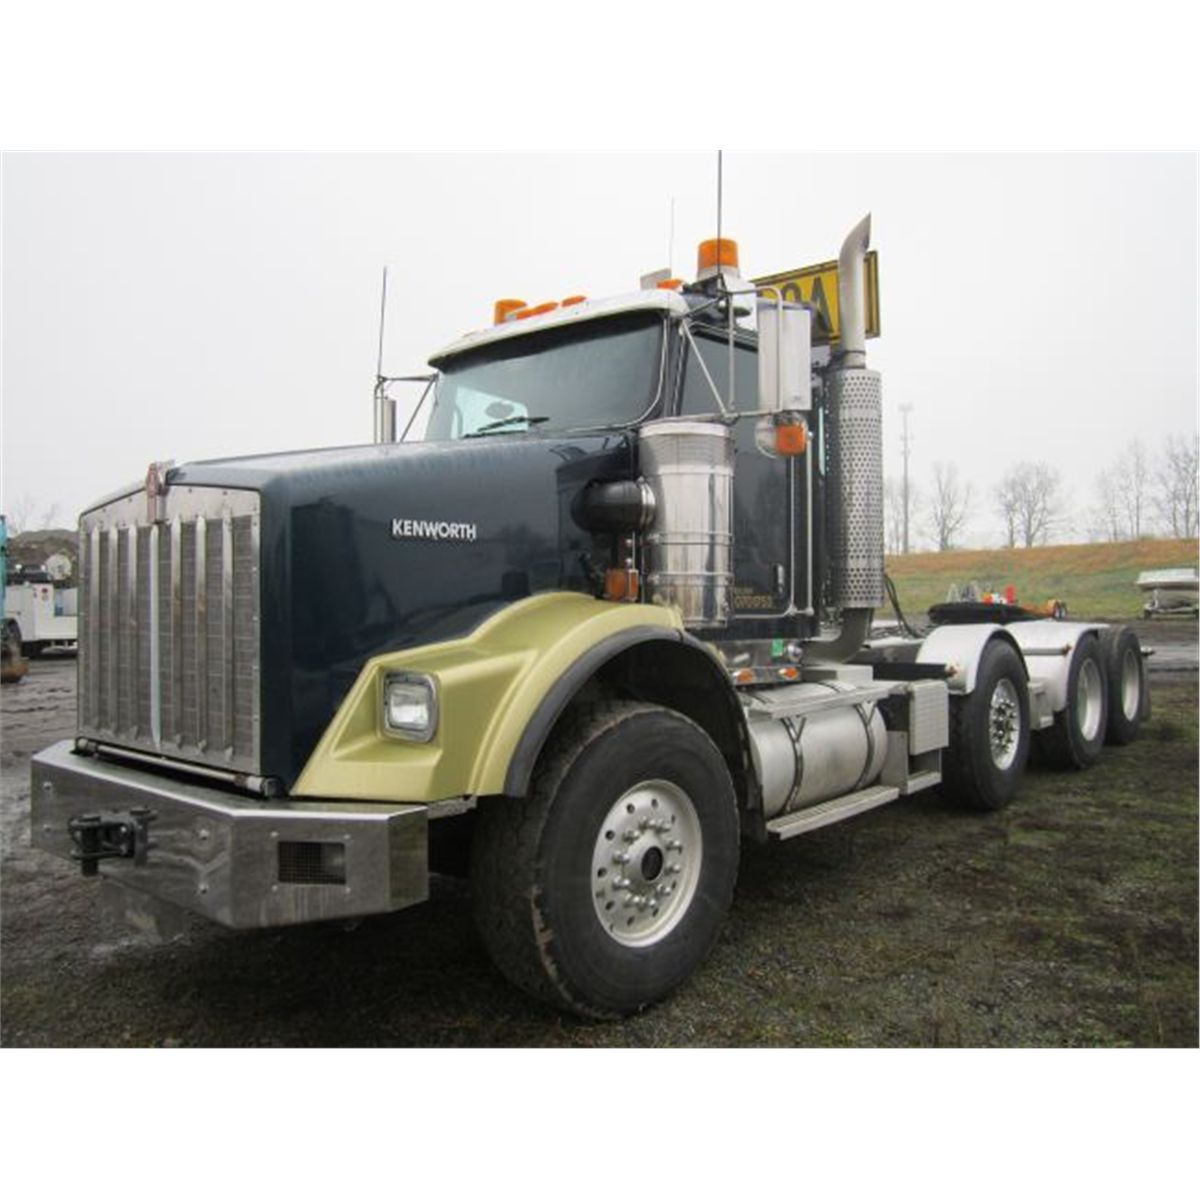 small resolution of 2007 kenworth t800 heavy haul truck tractor loading zoom